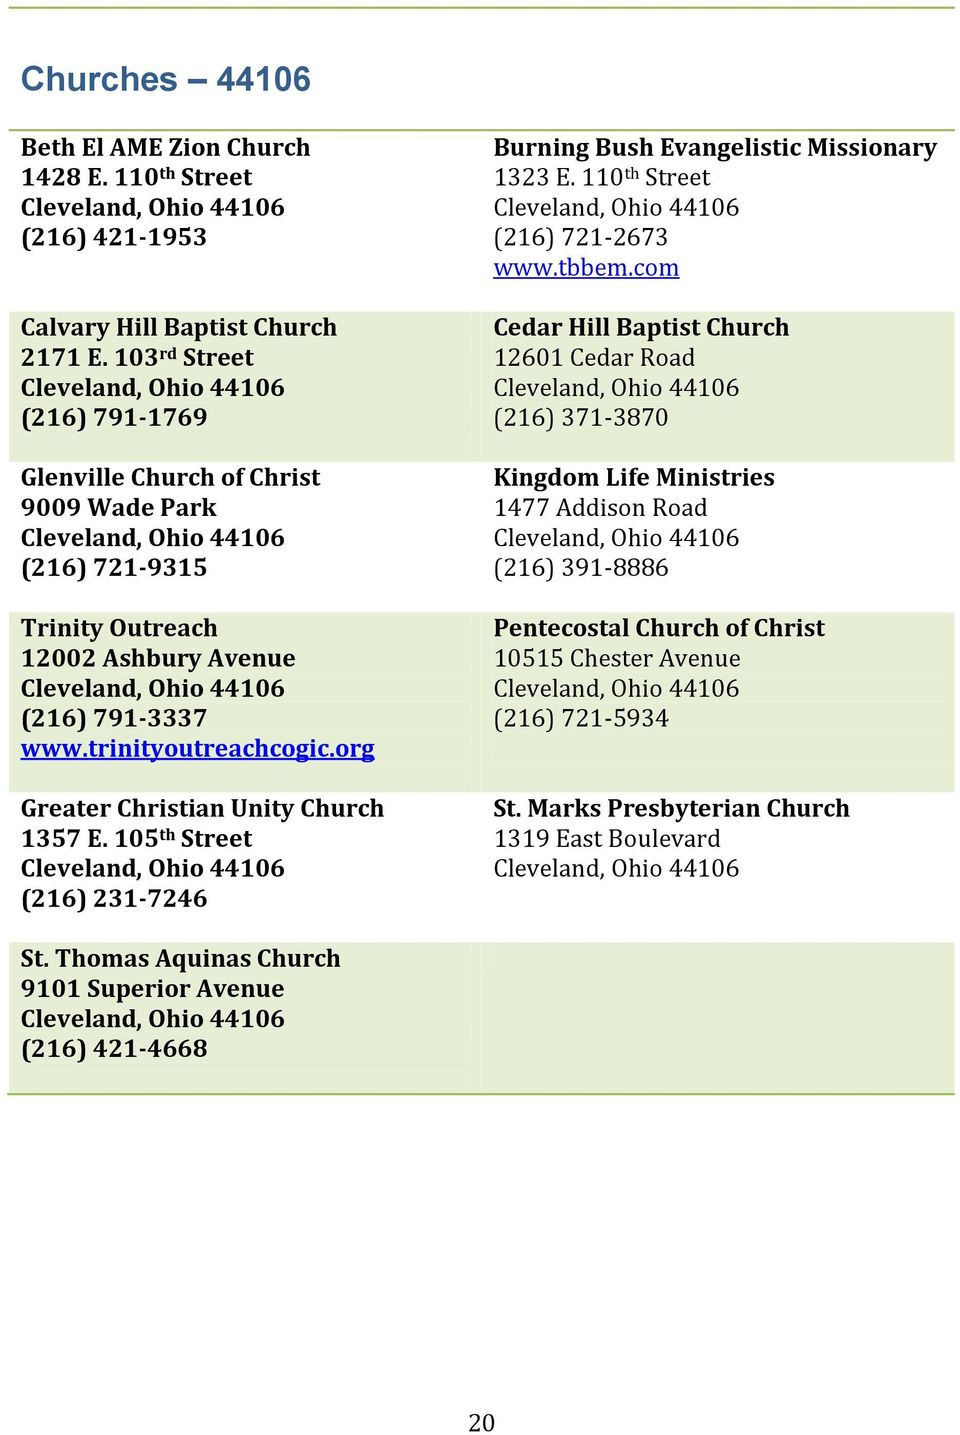 org Greater Christian Unity Church 1357 E. 105 th Street (216) 231-7246 Burning Bush Evangelistic Missionary 1323 E. 110 th Street (216) 721-2673 www.tbbem.